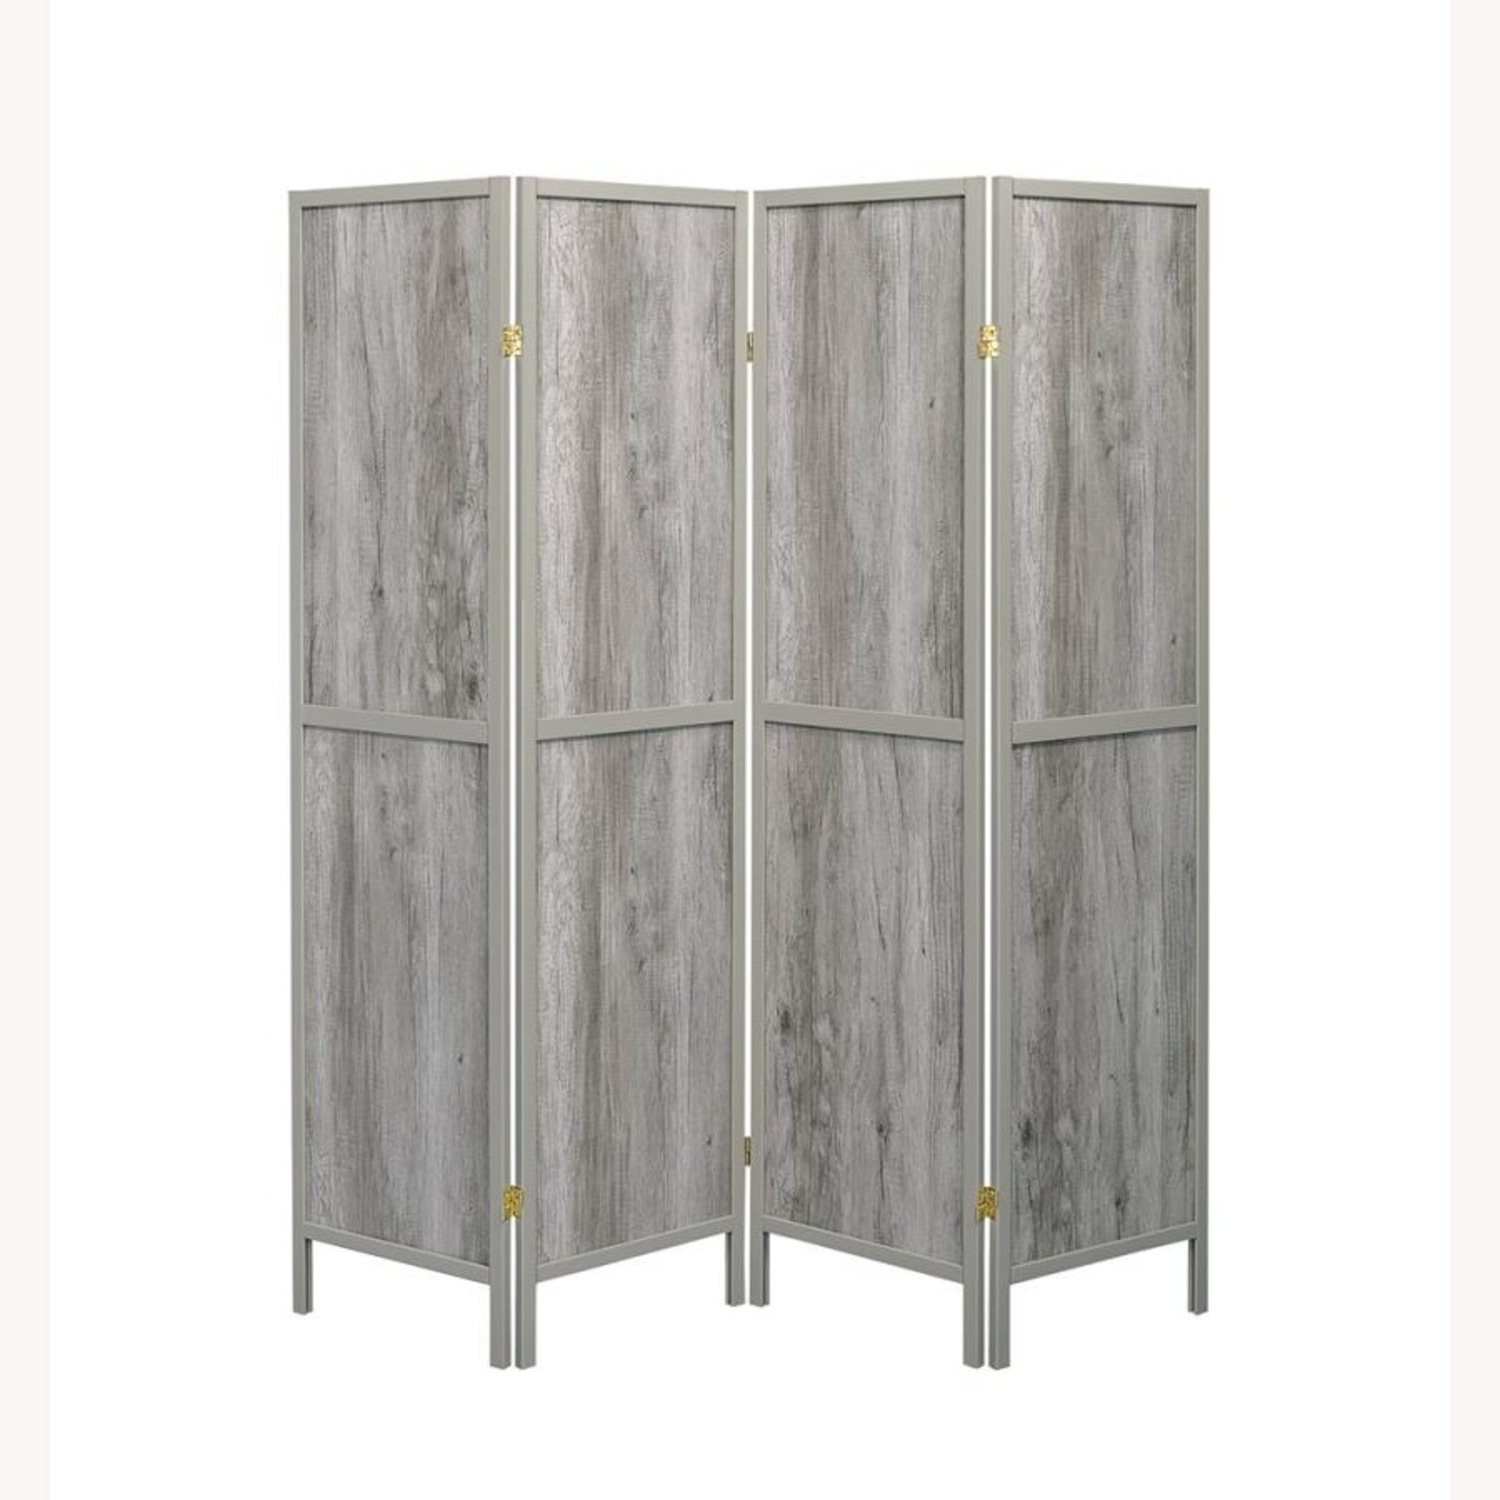 4-Panel Screen In Grey Driftwood & Grey Wood Frame - image-1